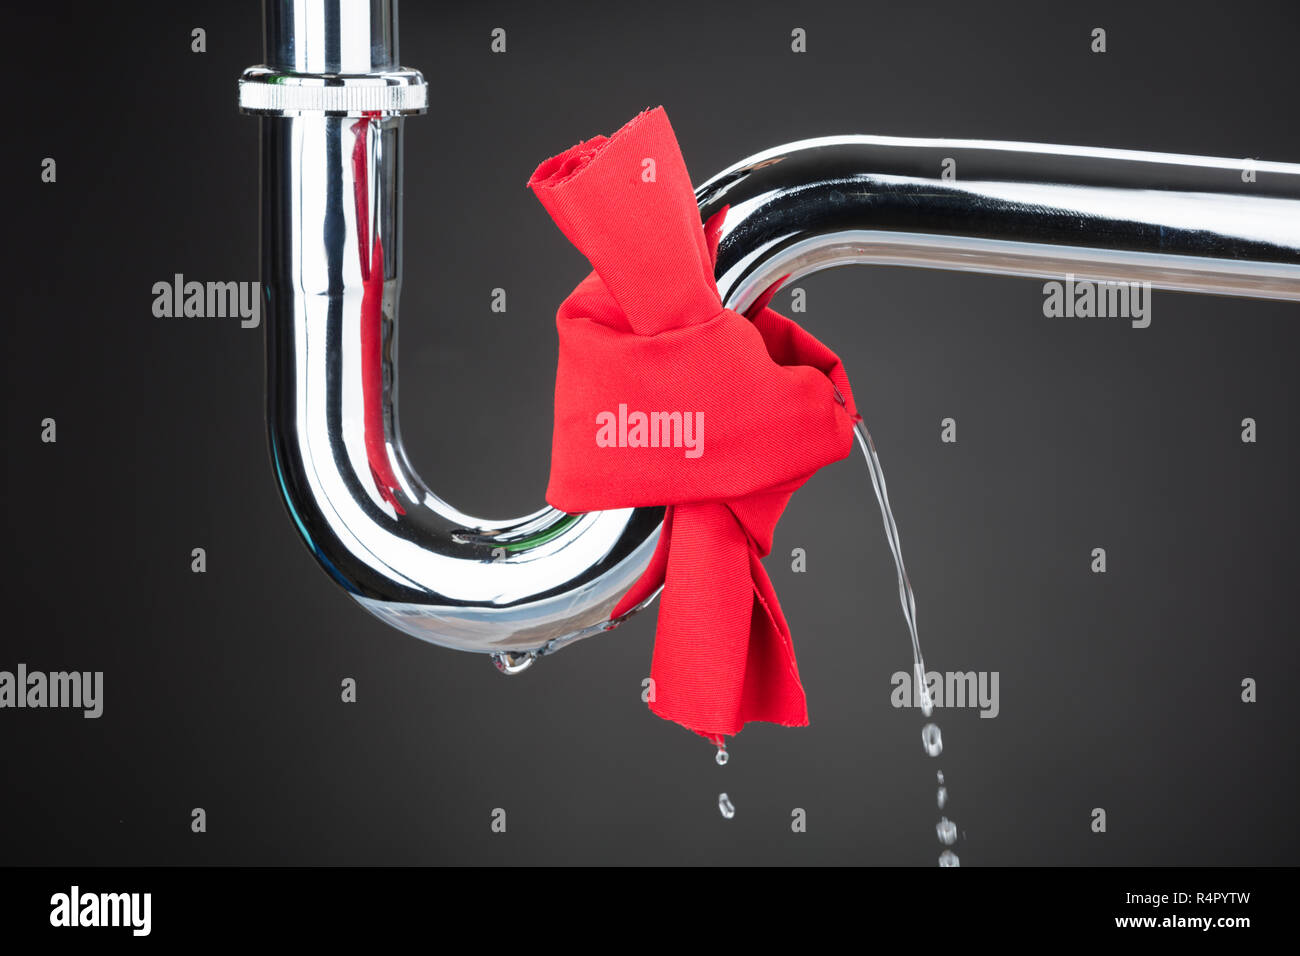 Red Cloth Tied On Leakage Pipe - Stock Image